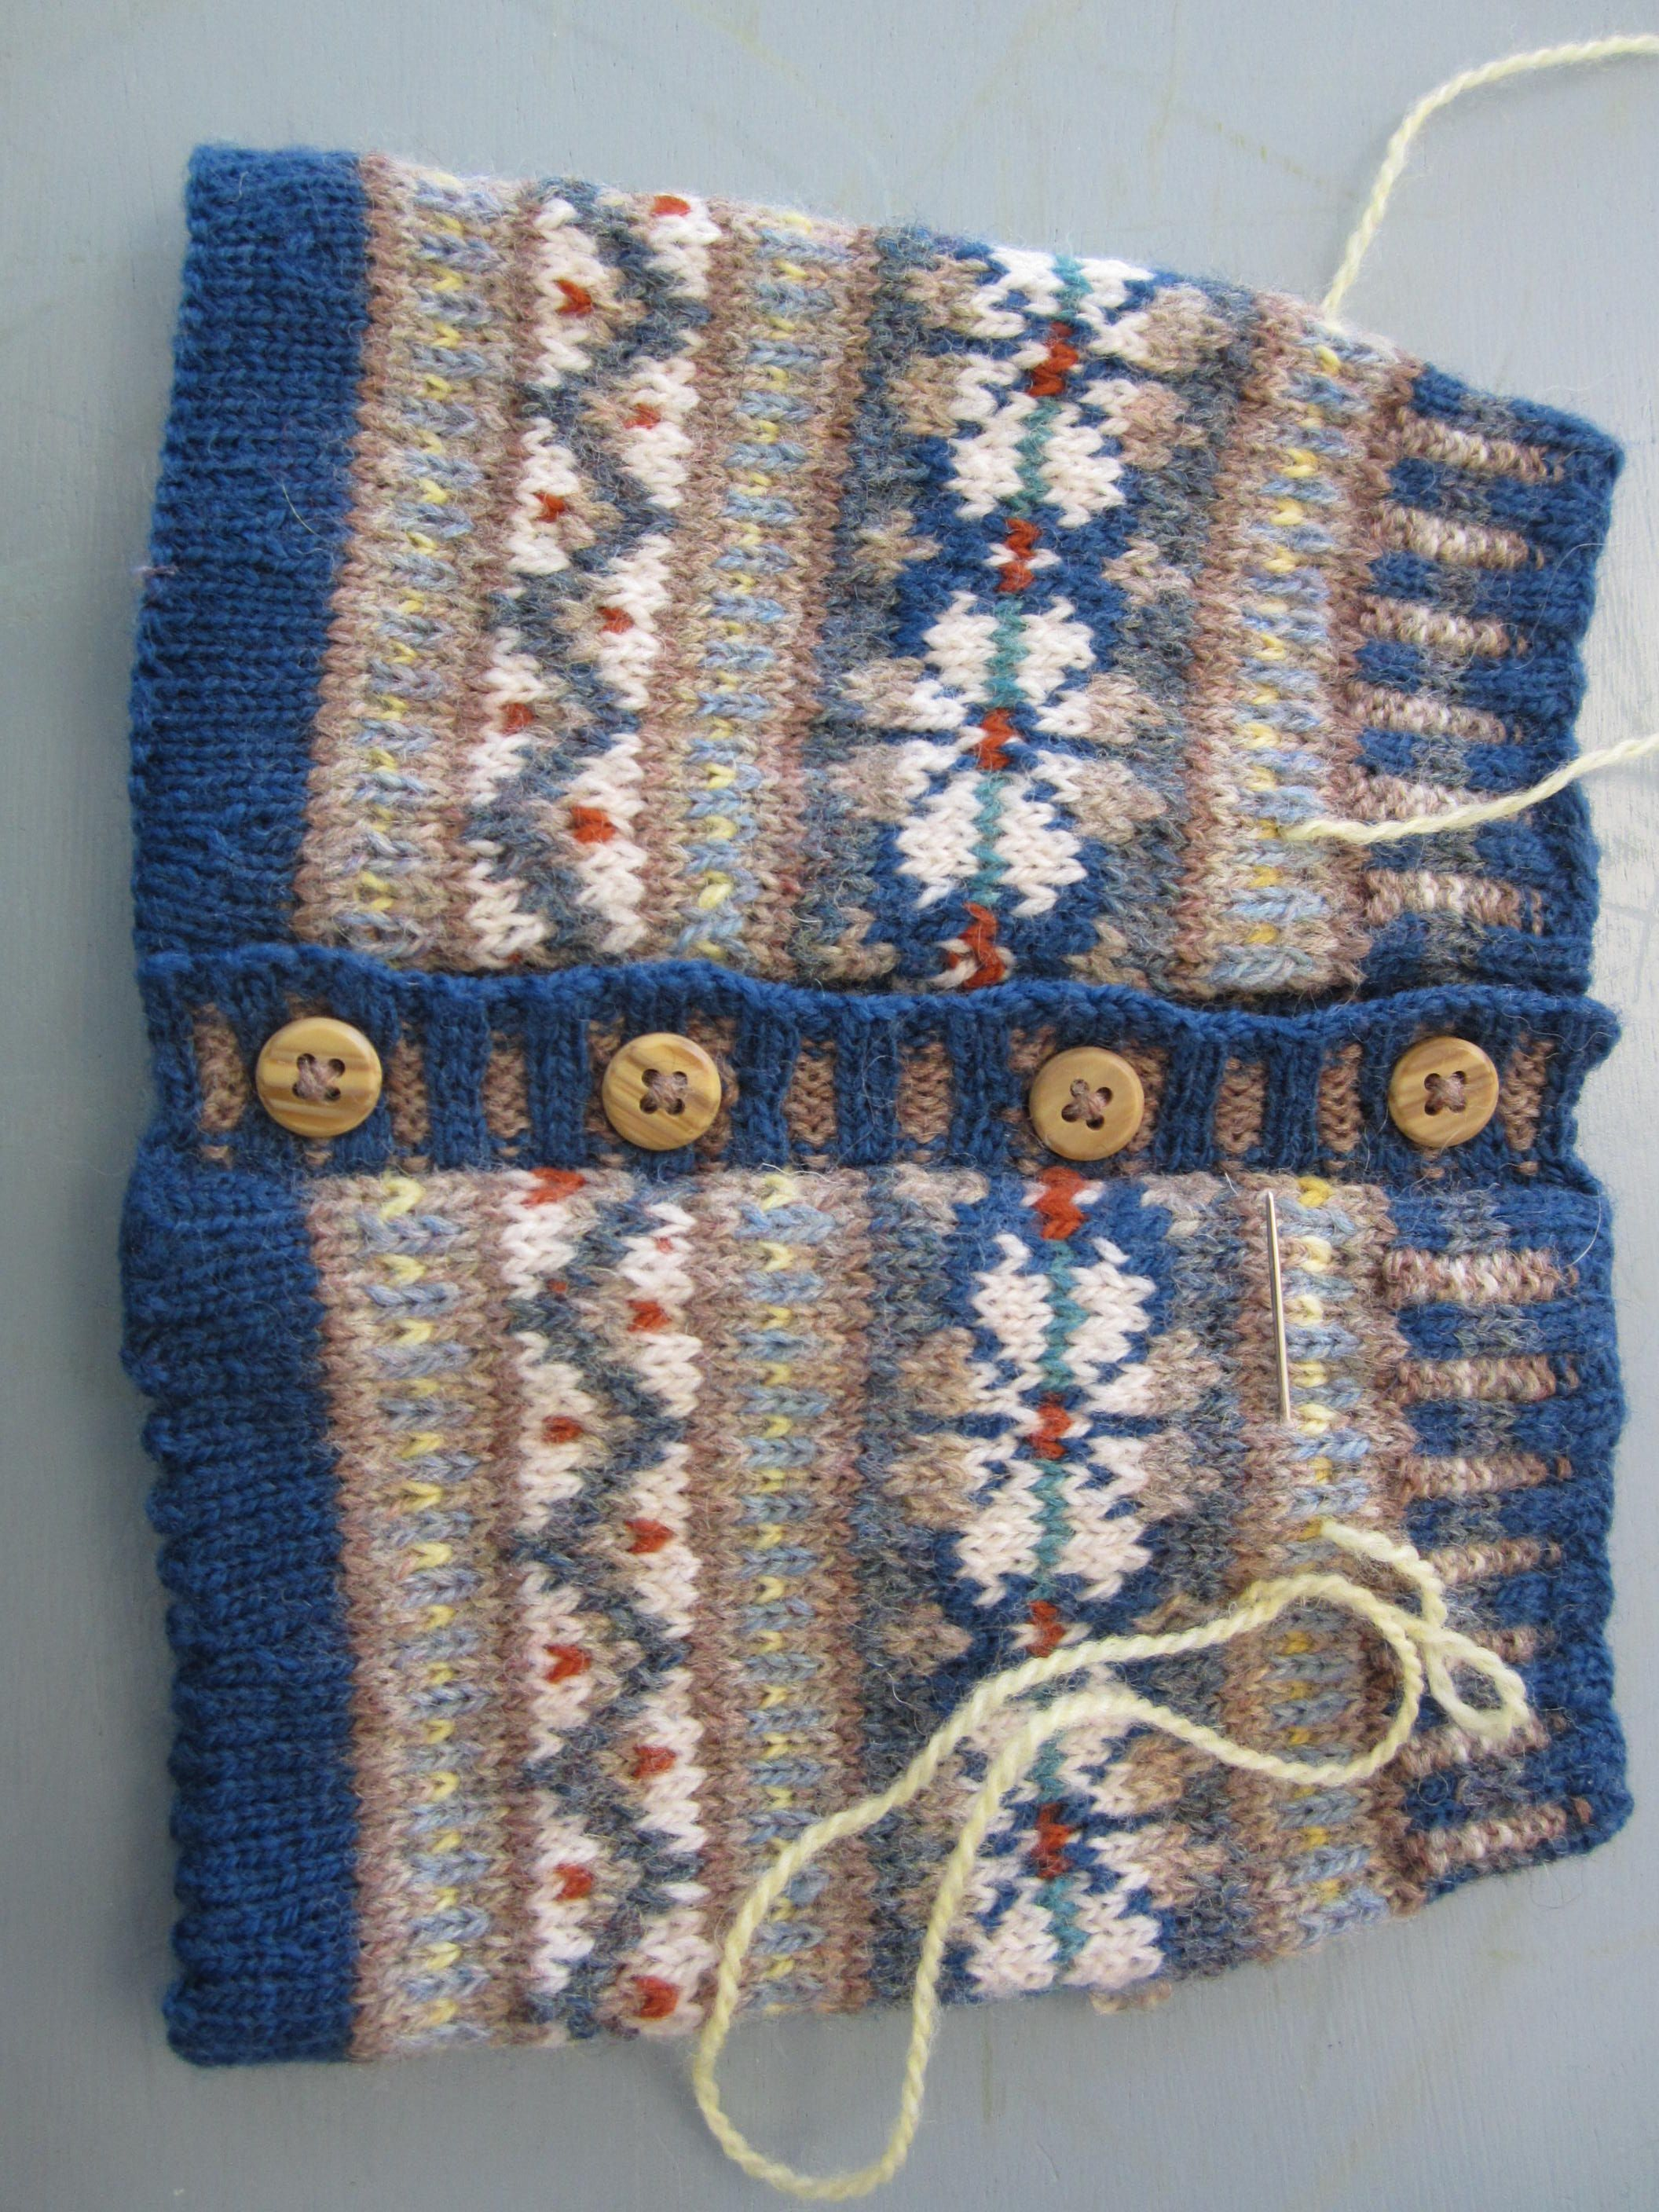 Tin can knits how to knit fair isle free pattern download how to use a color wheel to choose colors for a fair isle pattern from bankloansurffo Choice Image